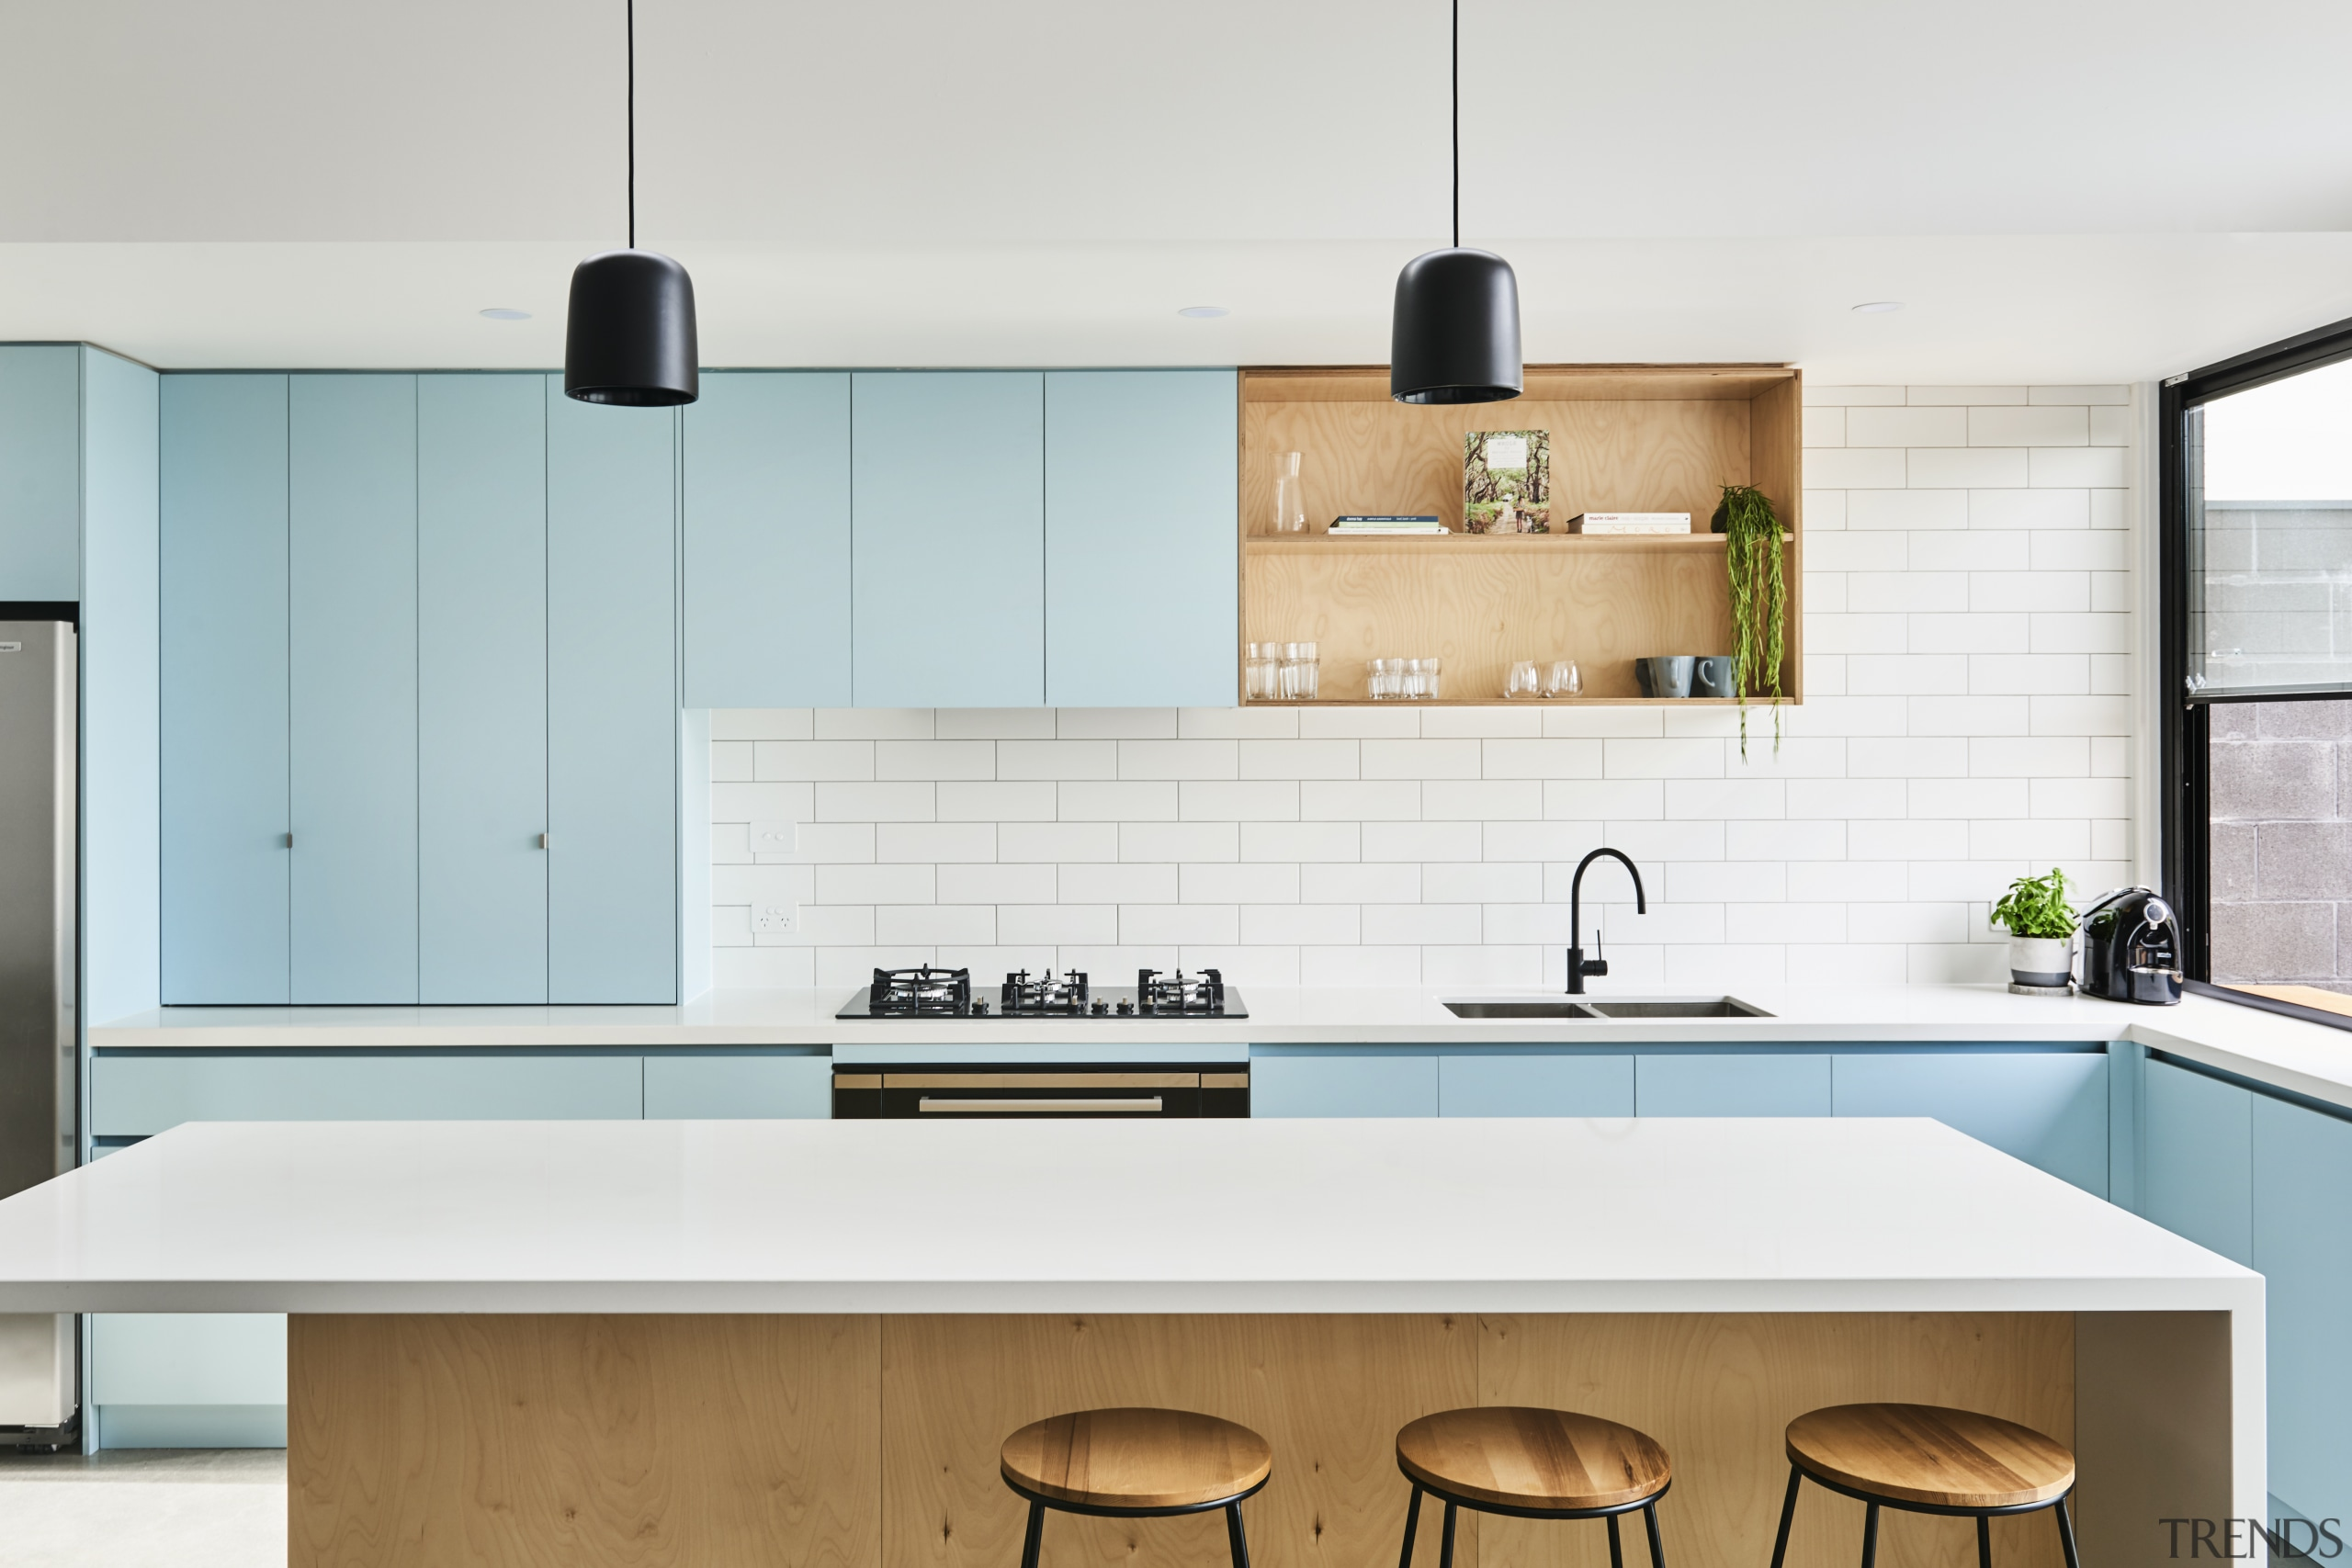 This colourful kitchen features a combination of laminate architecture, building, cabinetry, ceiling, countertop, floor, furniture, hardwood, home, house, interior design, kitchen, kitchen stove, material property, plywood, property, room, sink, tile, wood, white